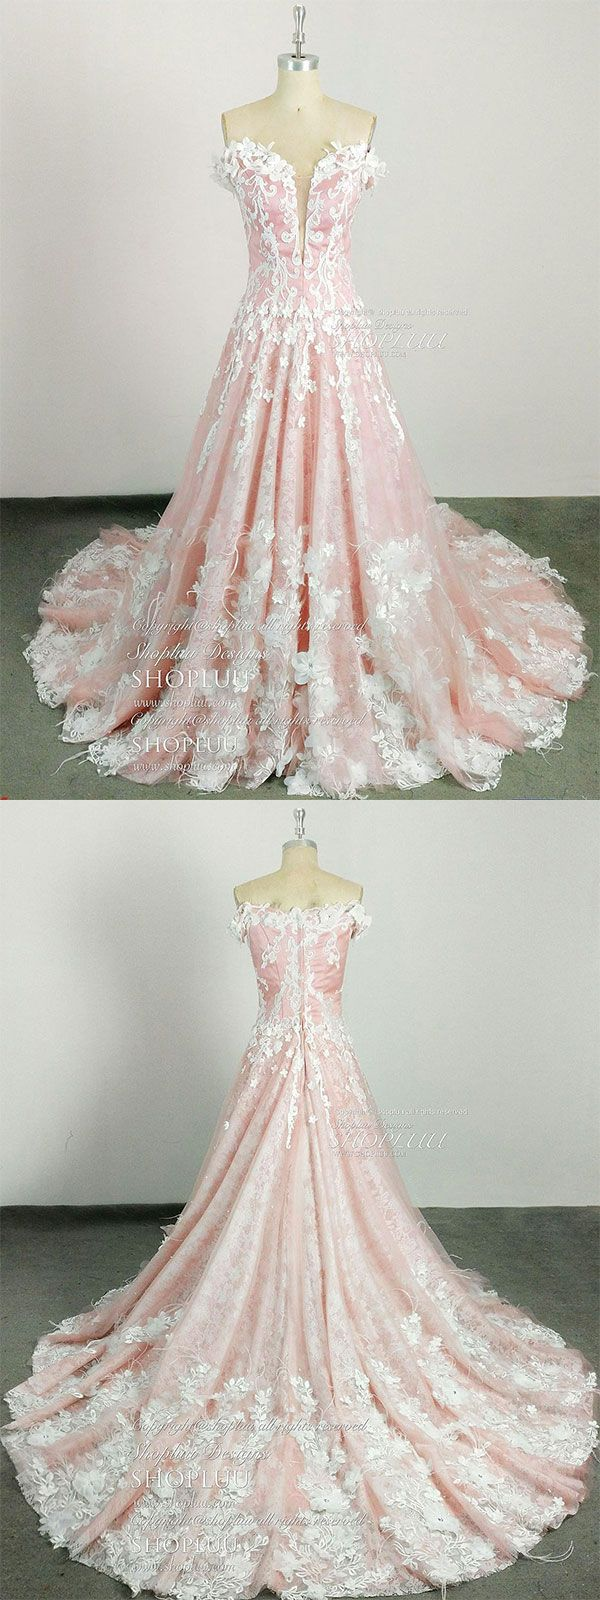 Pink sweetheart neck lace tulle long prom dress pink lace evening